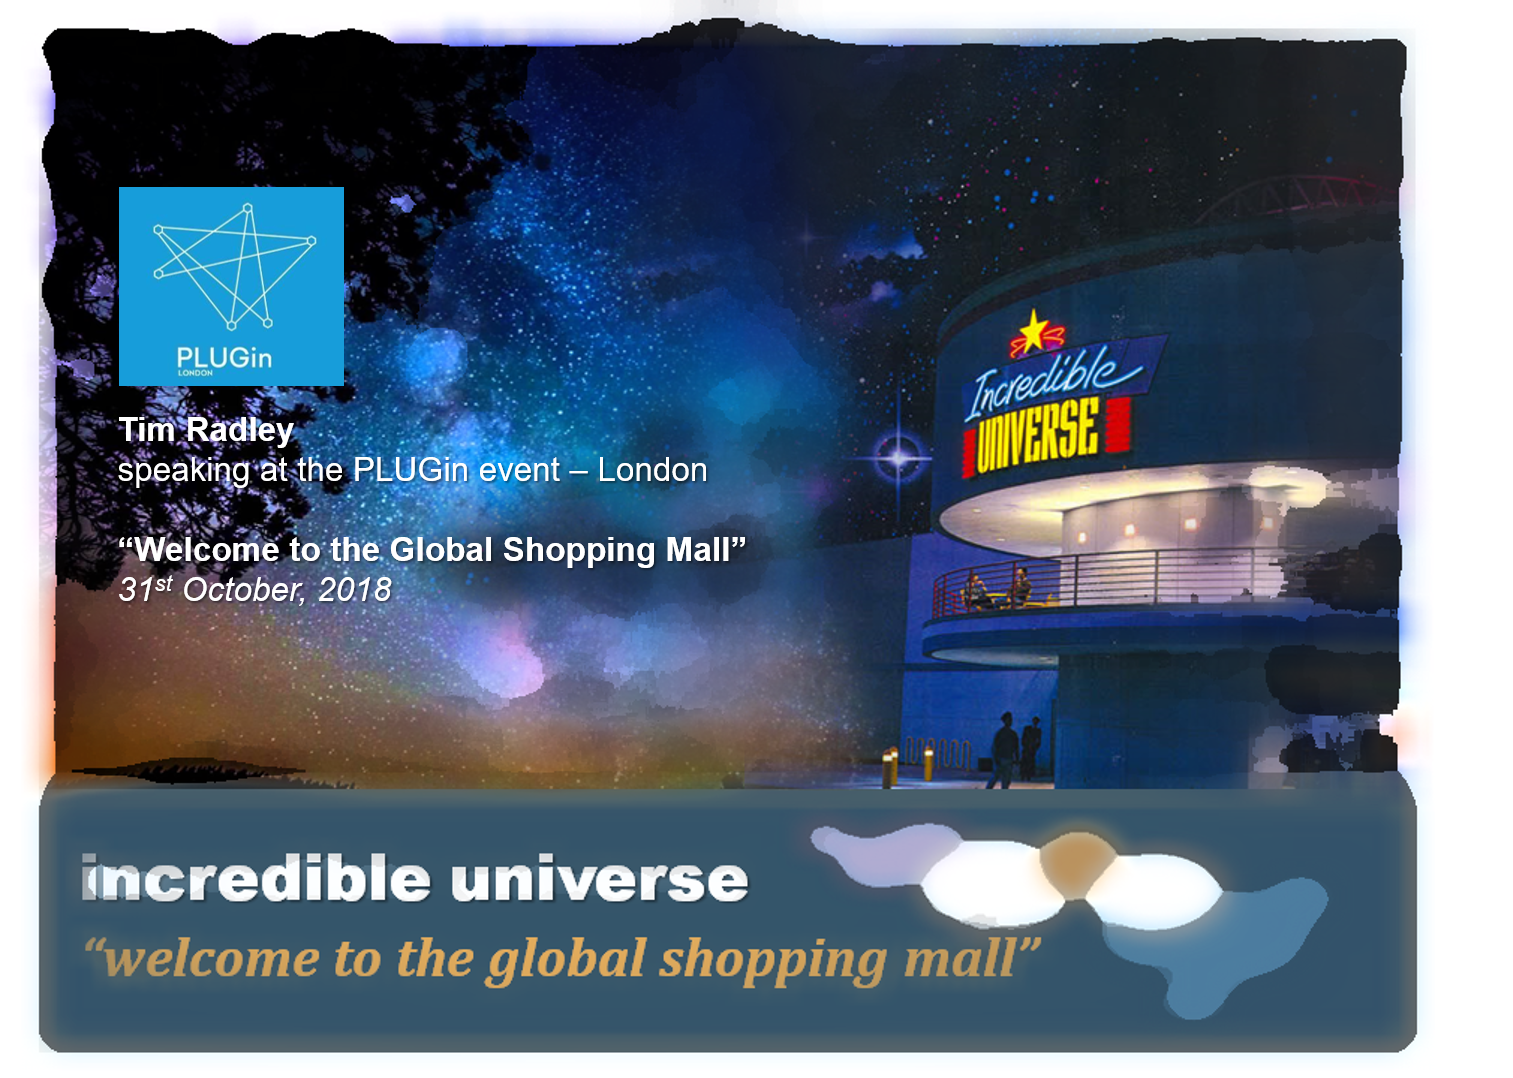 incredible-universe-welcome-to-the-global-shopping-mall